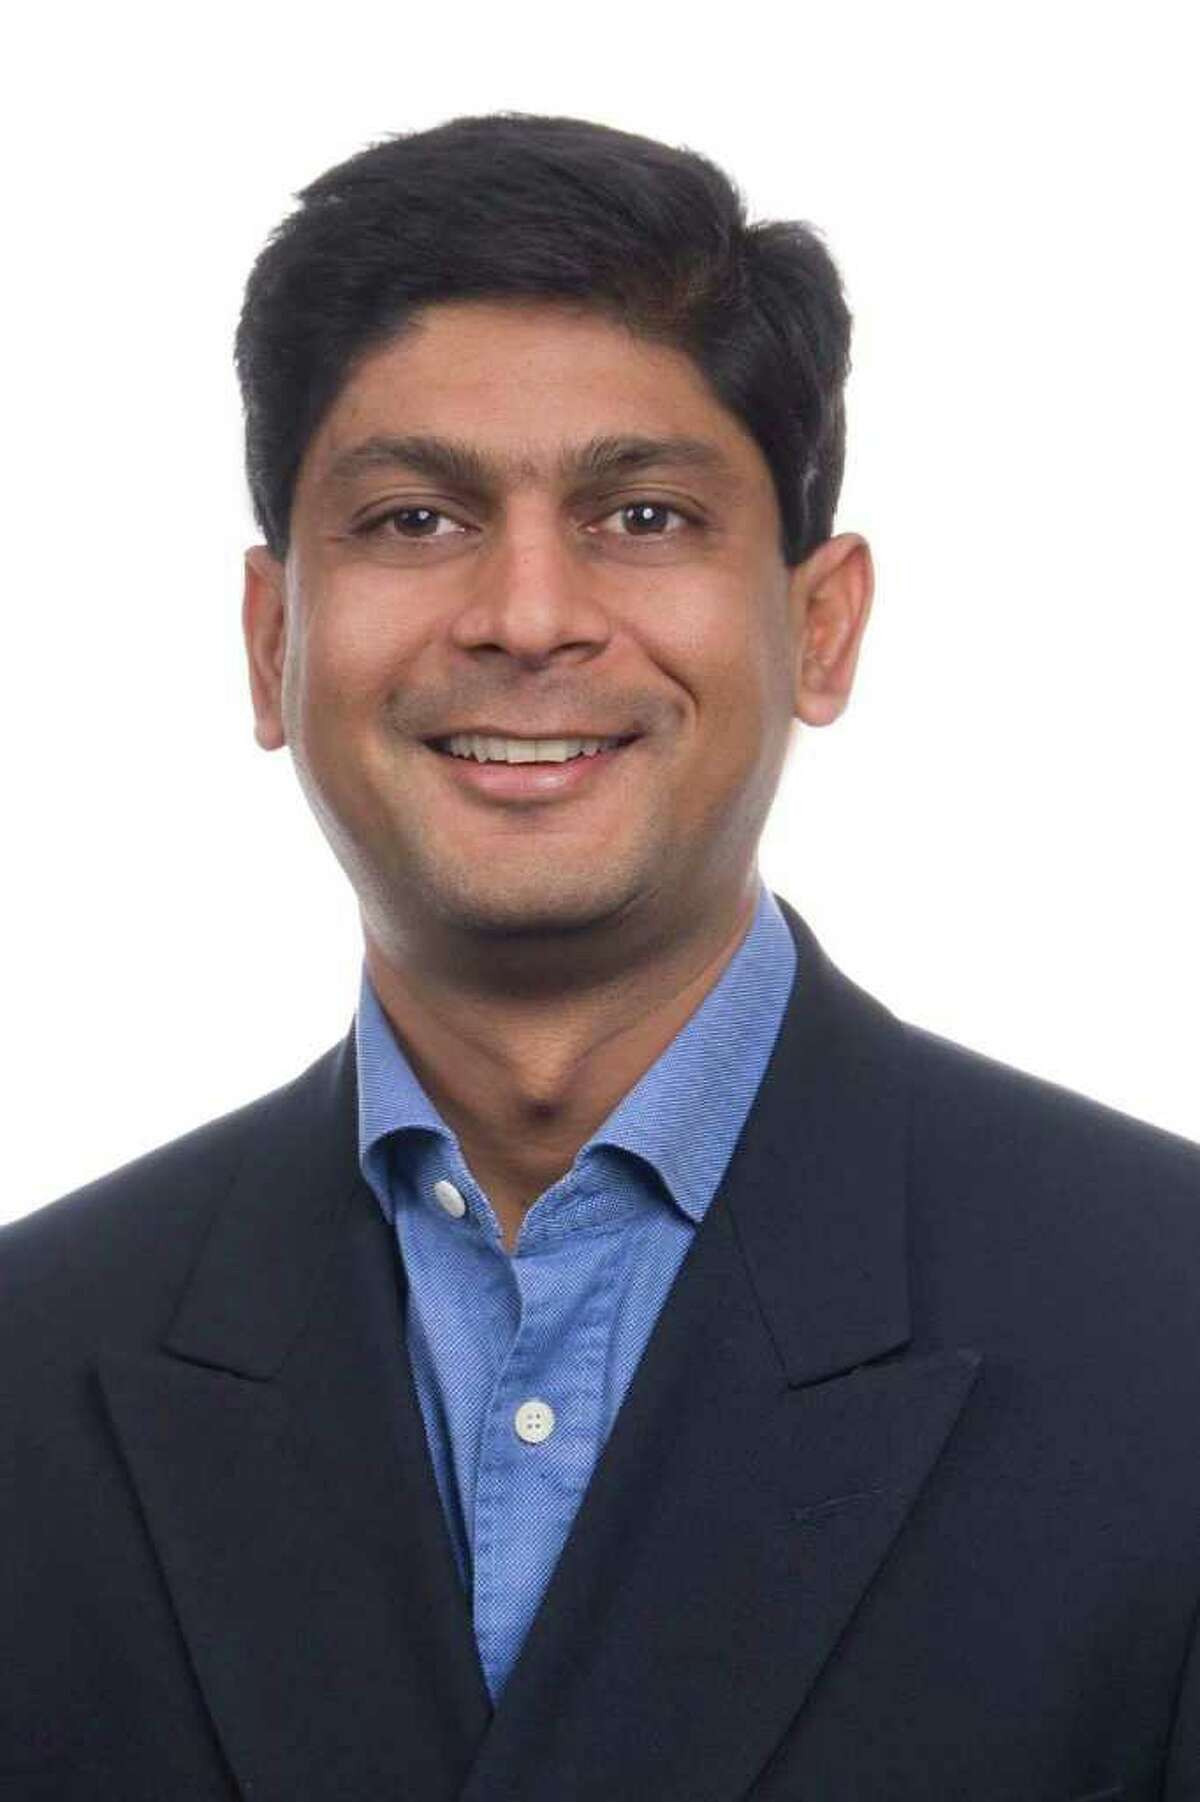 Alert Logic, the leader in delivering Security-as-a-Service for the cloud, today announced the expansion of its senior executive team with the appointment of Rohit Gupta as Vice President of Business Development.